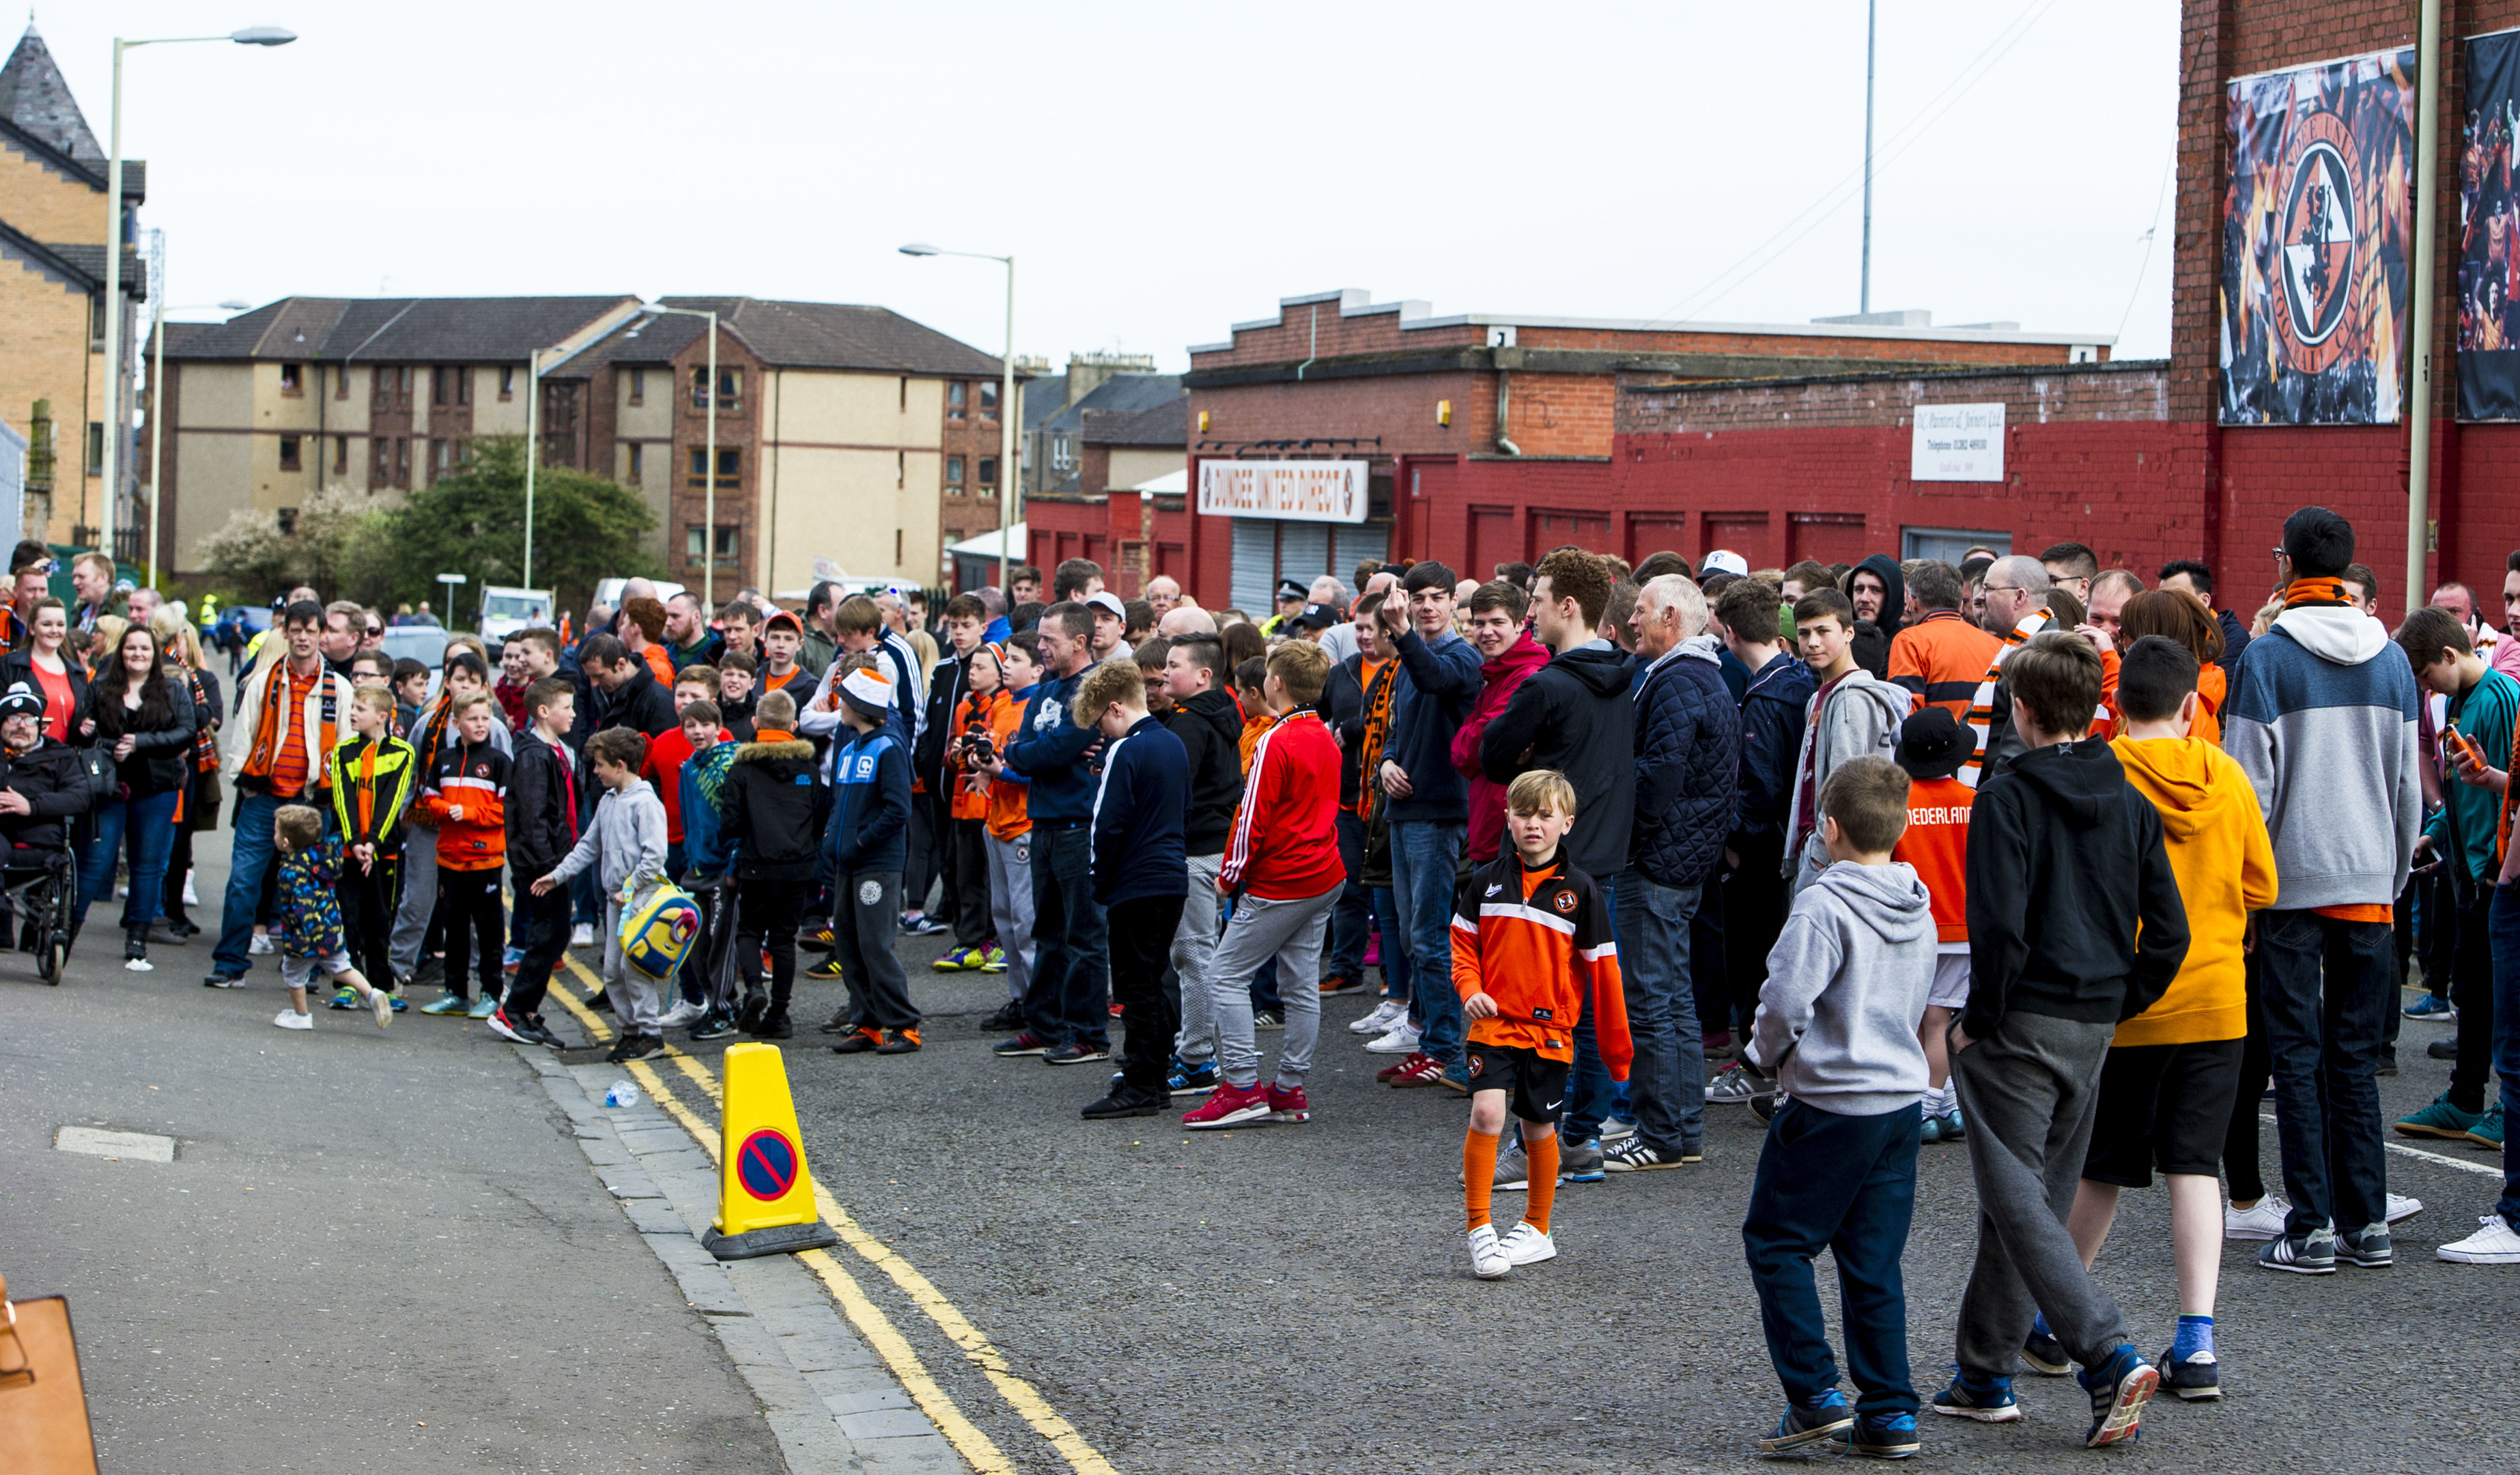 Dundee United fans protesting outside Tannadice on Sunday.